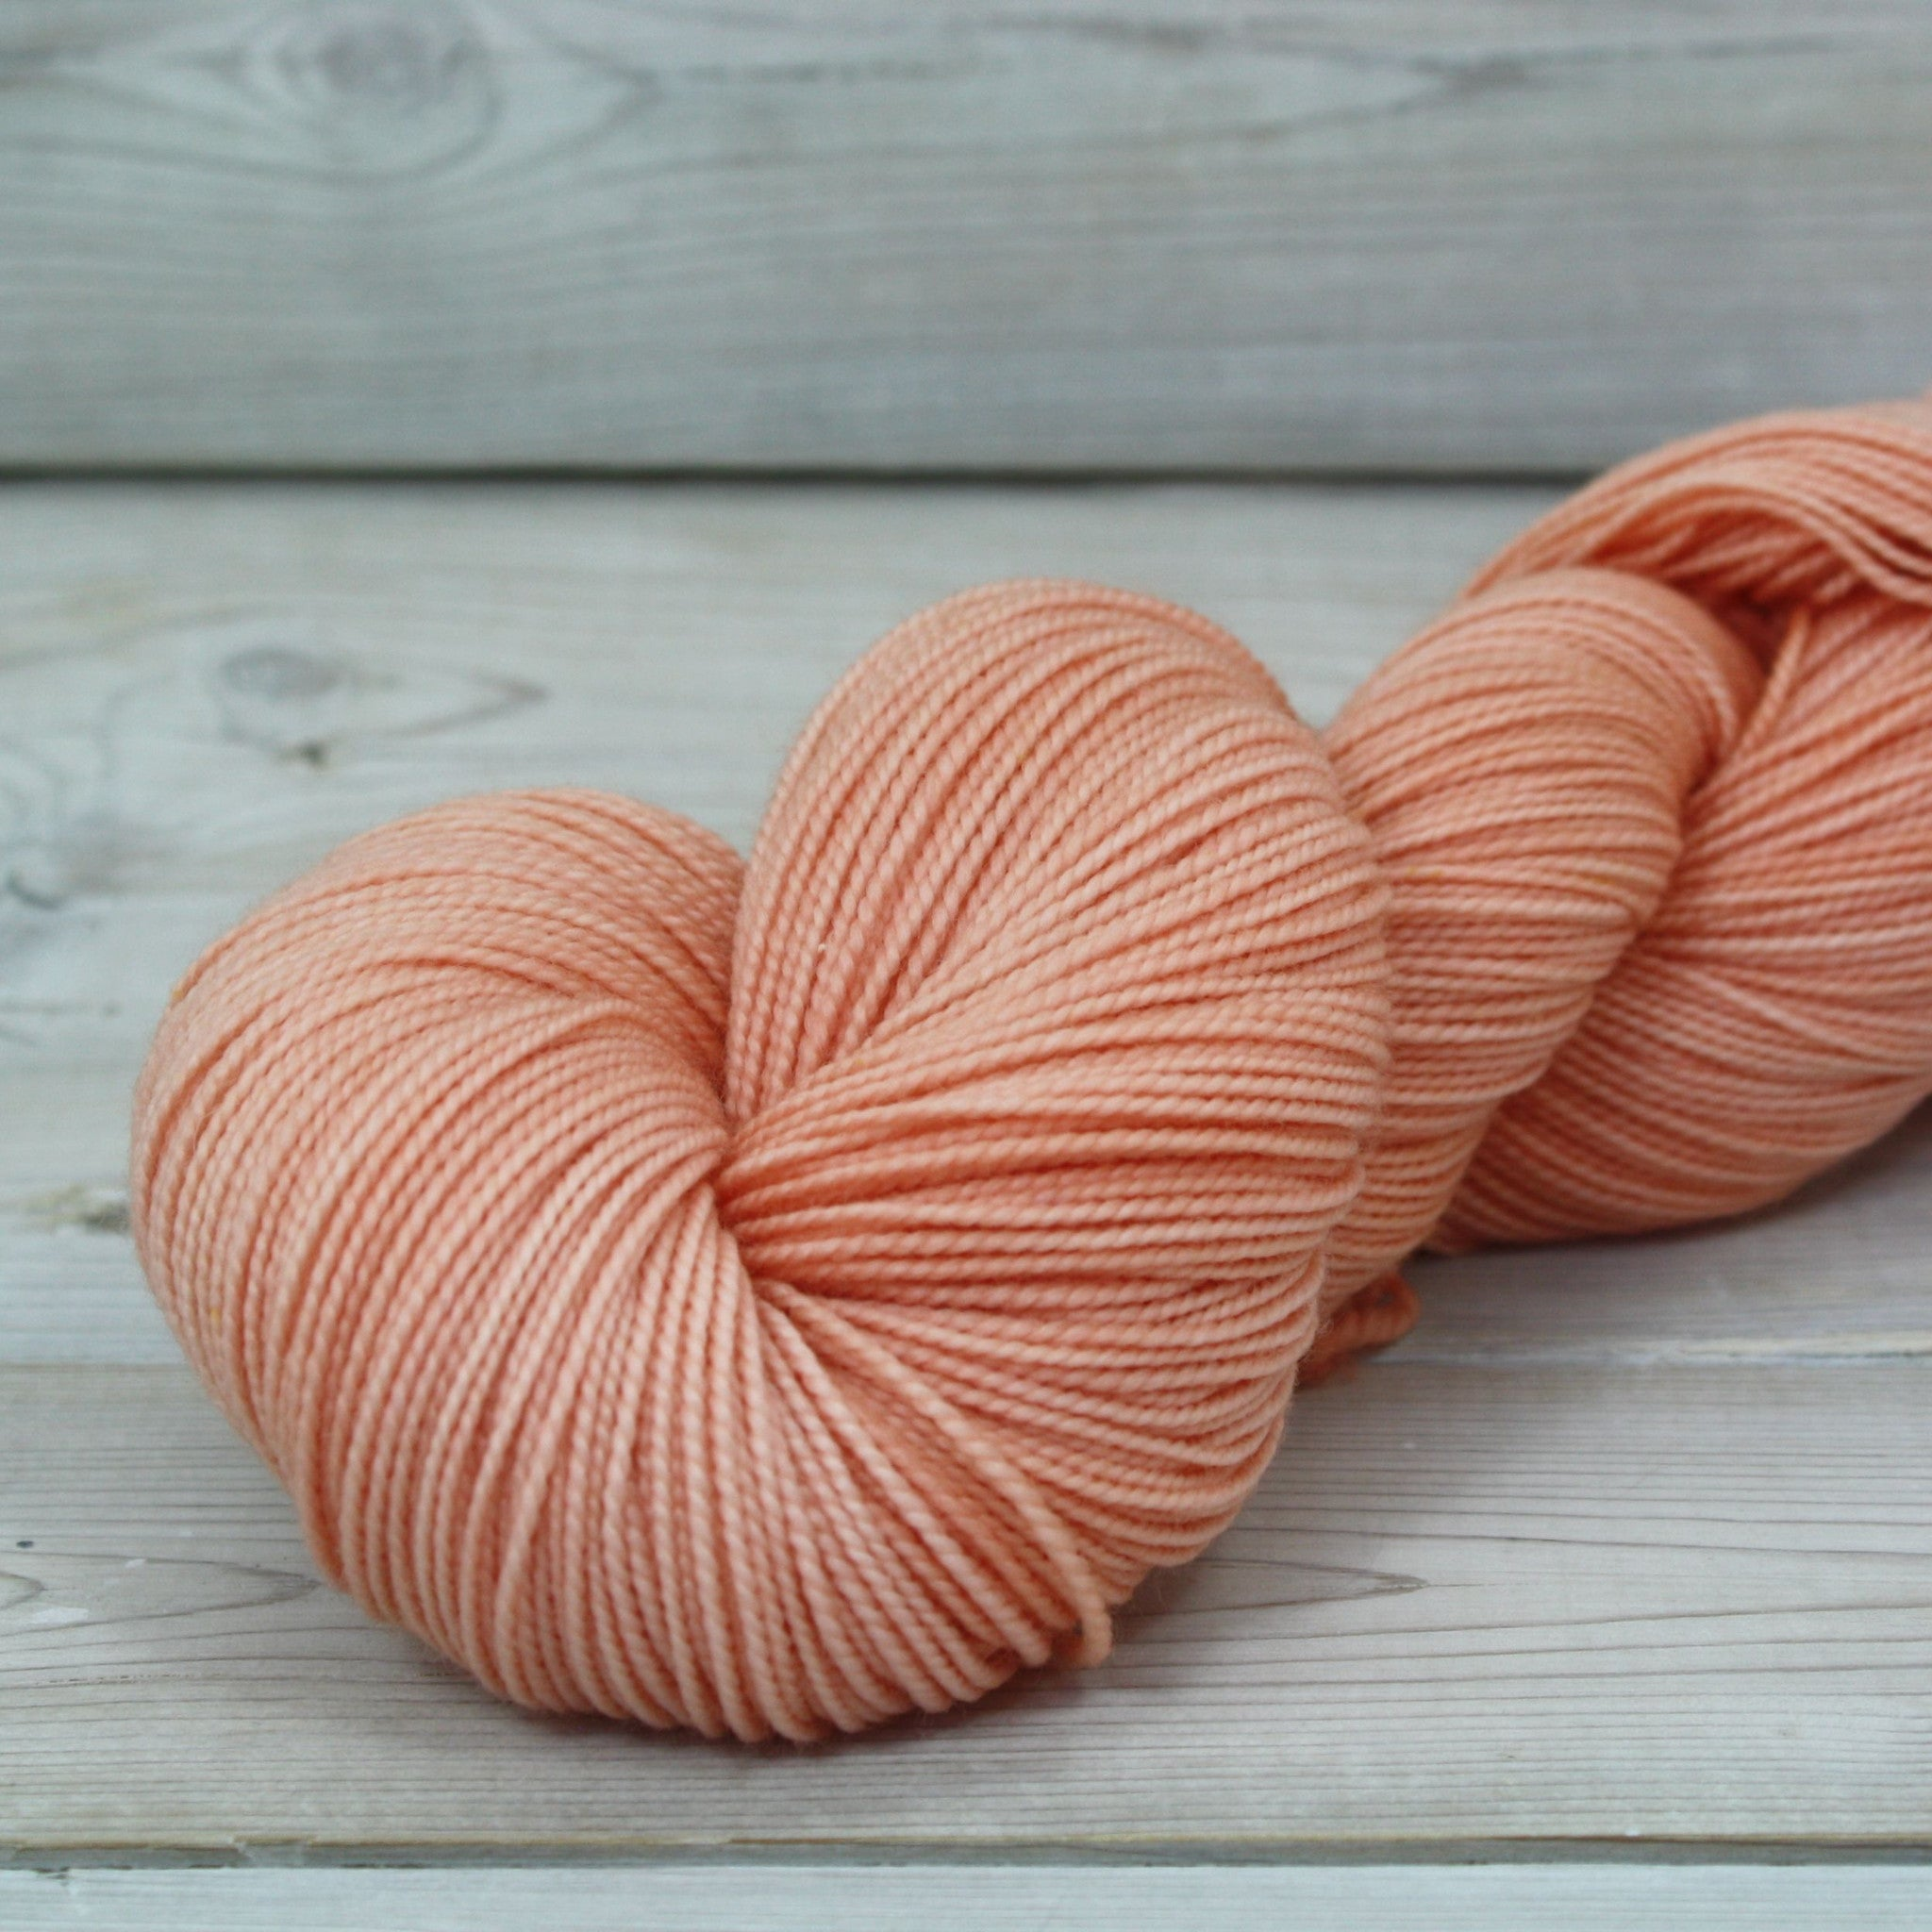 Celeste Yarn | Colorway: Blush